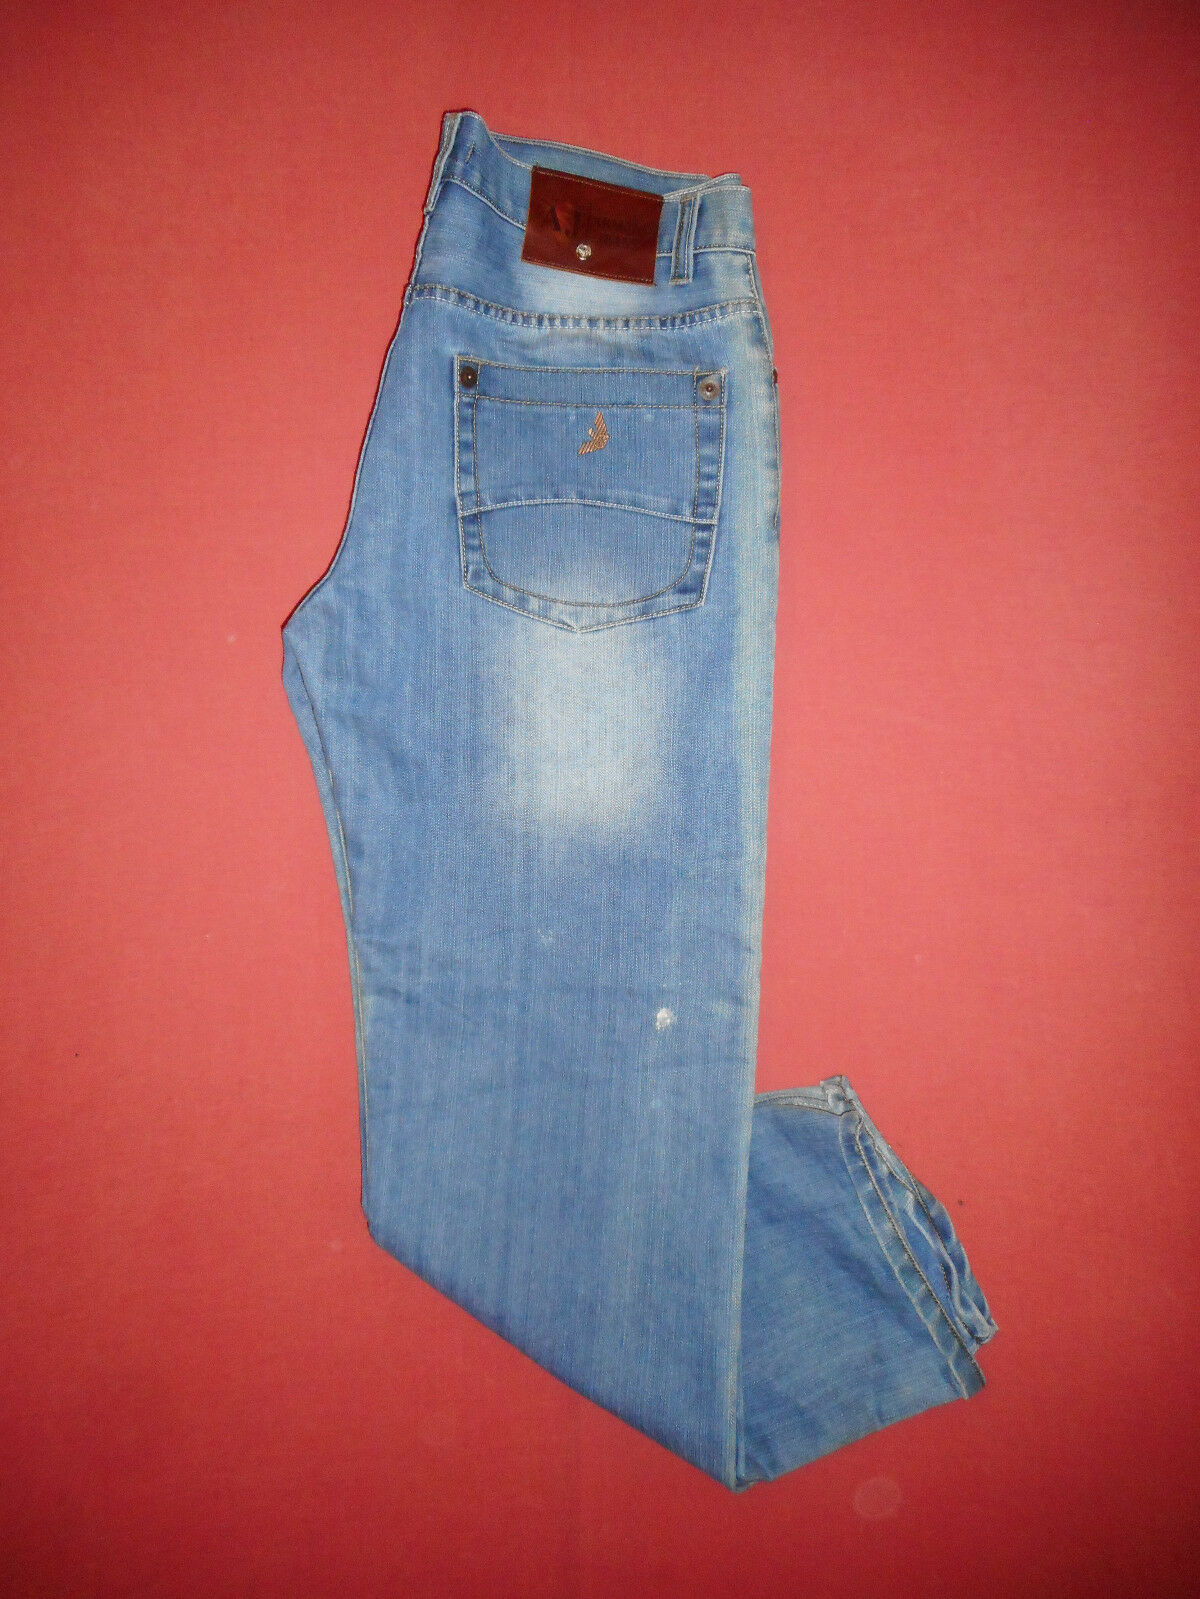 AJ Armani - W38 L33 - Mens bluee Denim Jeans - Button-Fly - X222